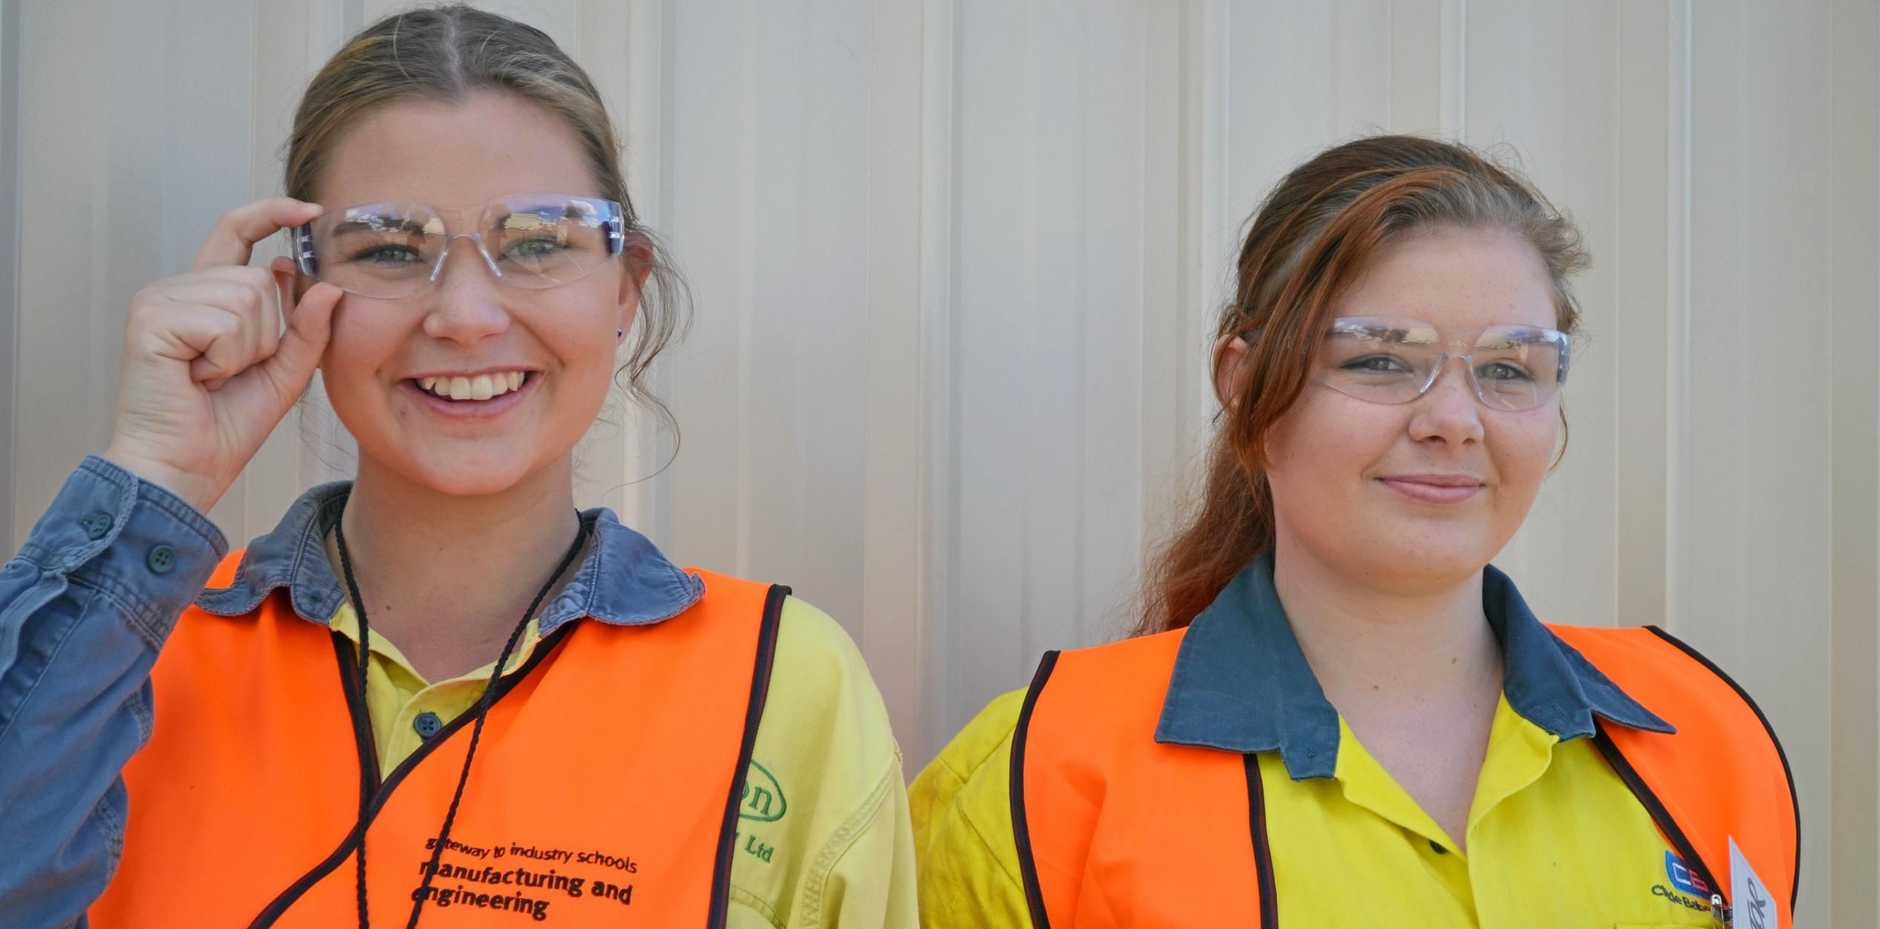 FIRST-HAND LOOK: Sarah Broadhead and Naomi Sloane were part of the Women Who Weld program.